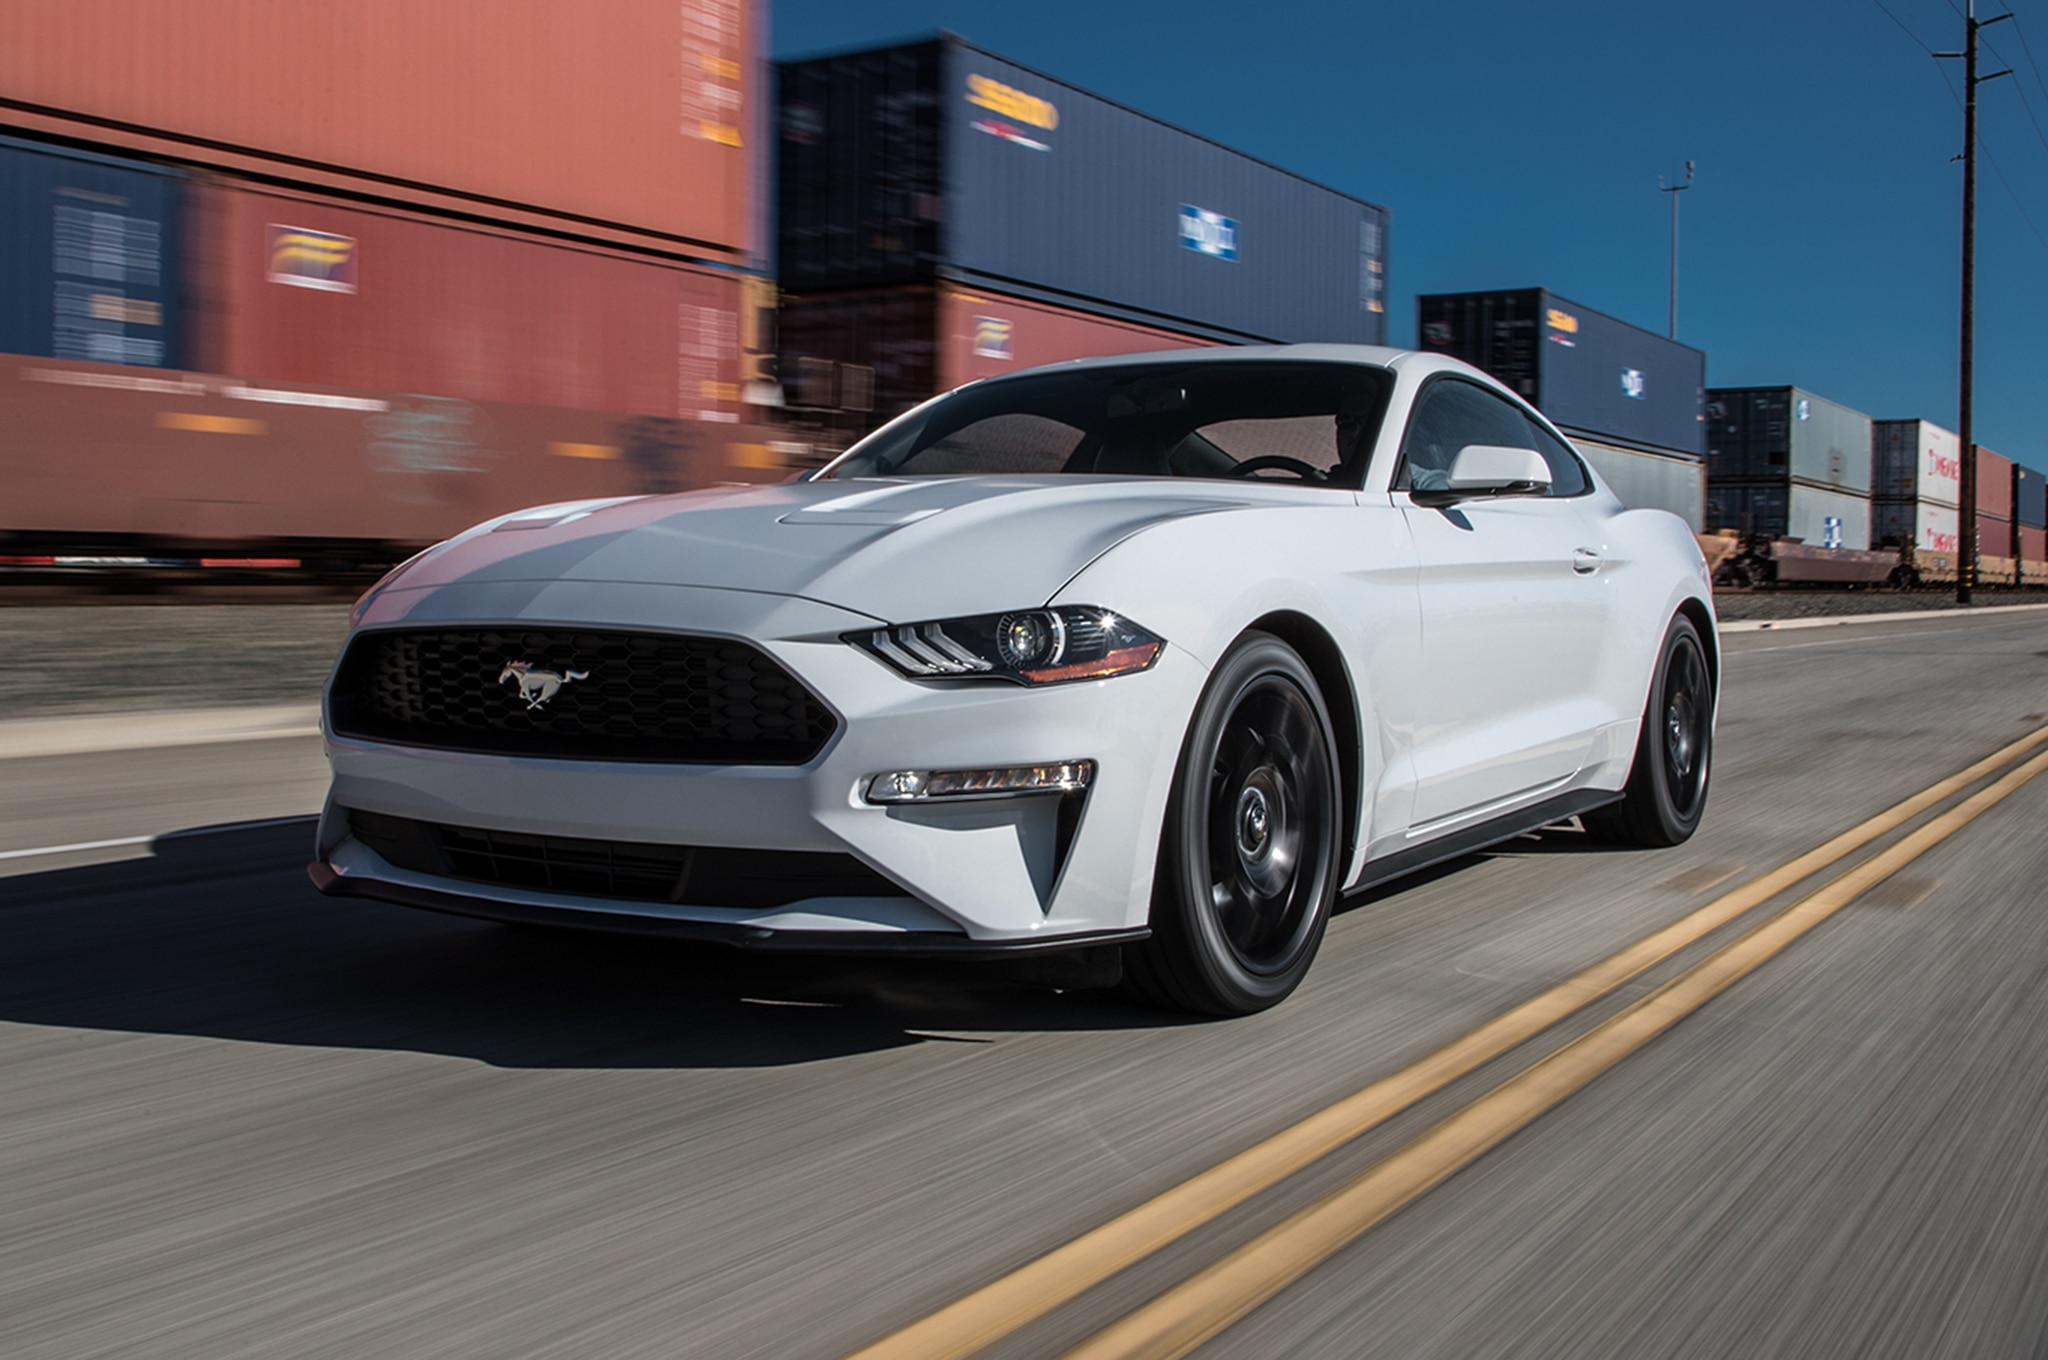 2018 Ford Mustang EcoBoost Front Three Quarter In Motion 04